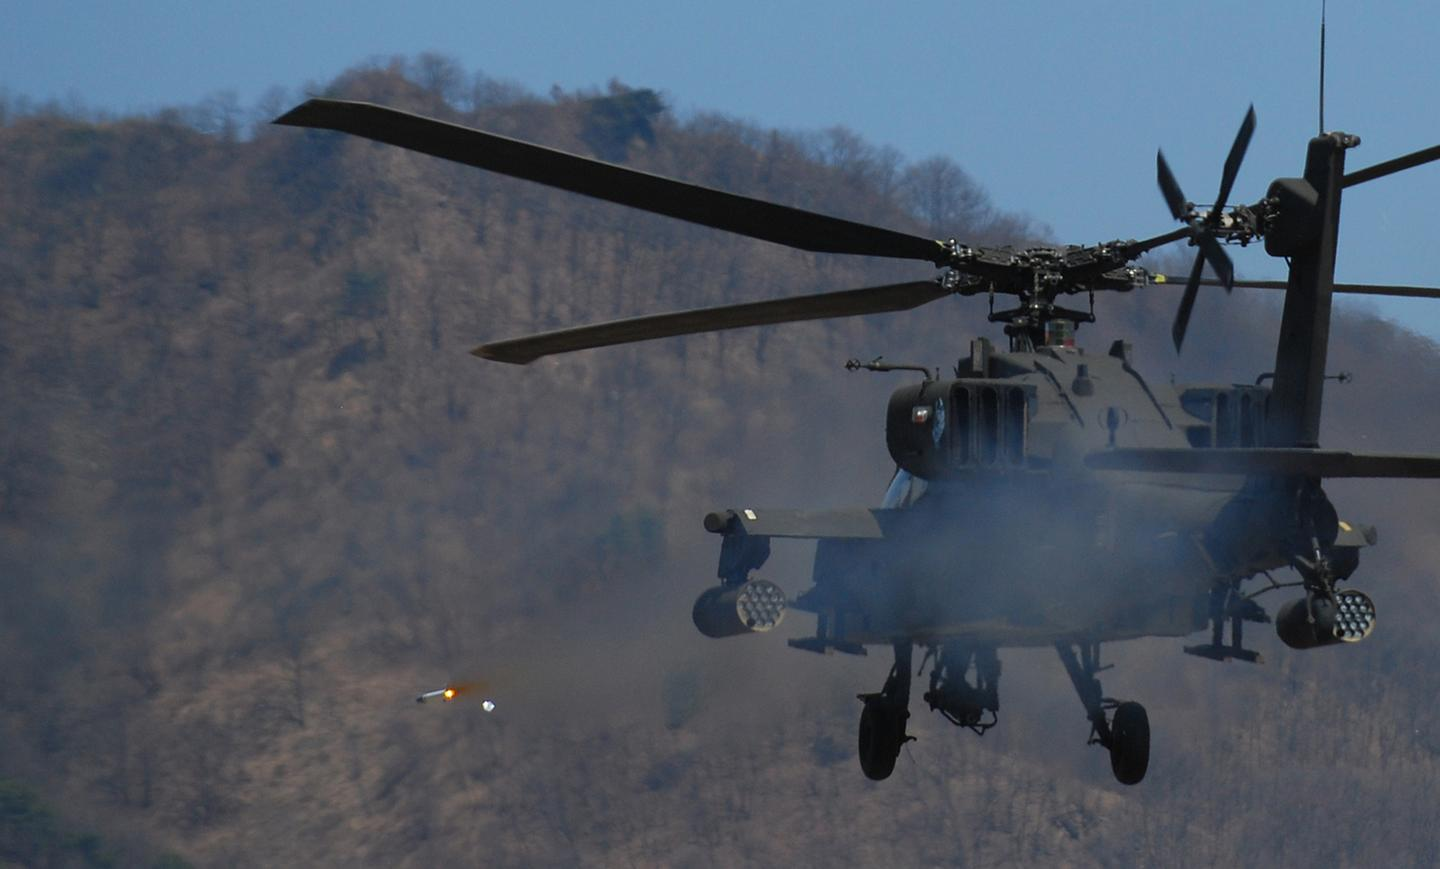 The first Apache attack helicopters to deploy GFAS will be those of 1-101 Aviation based in Fort Campbell some twelve months from now, significantly reducing the vulnerability of the relatively slow, low-flying Boeing AH-64 Apache in combat.